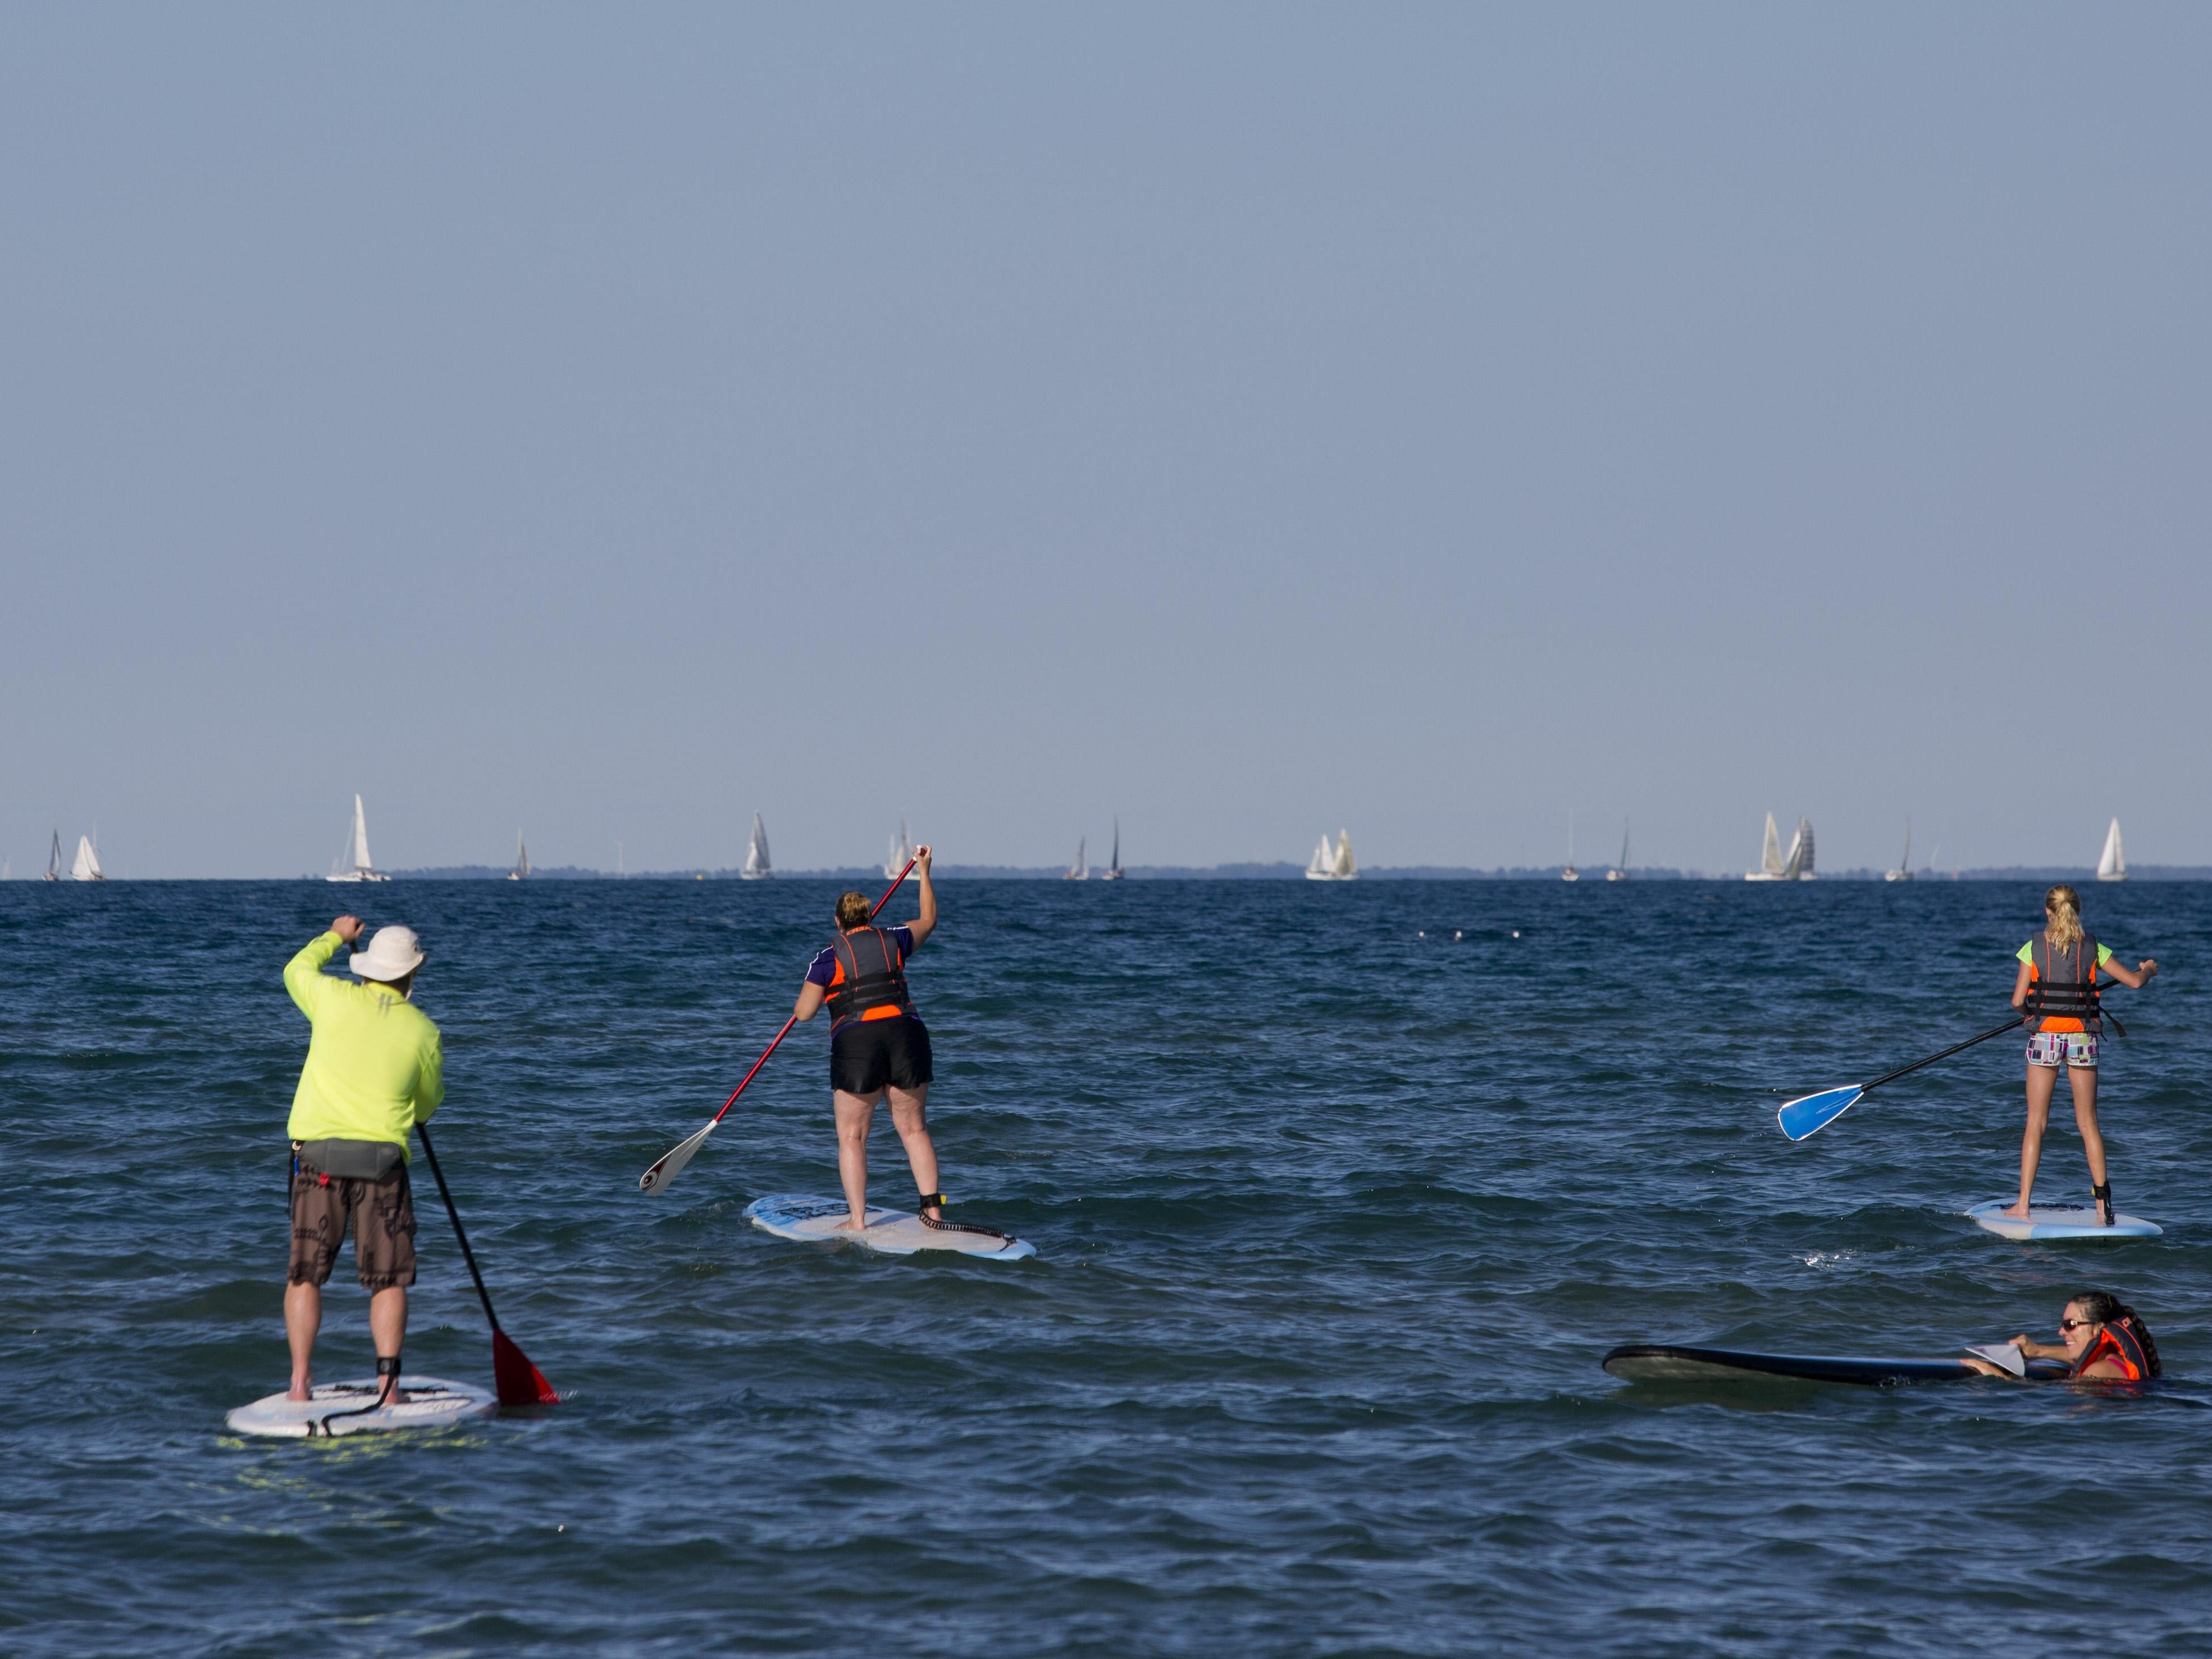 Participants head out on the lake during a stand up paddle board class Wednesday at Lakeside Beach in Port Huron.